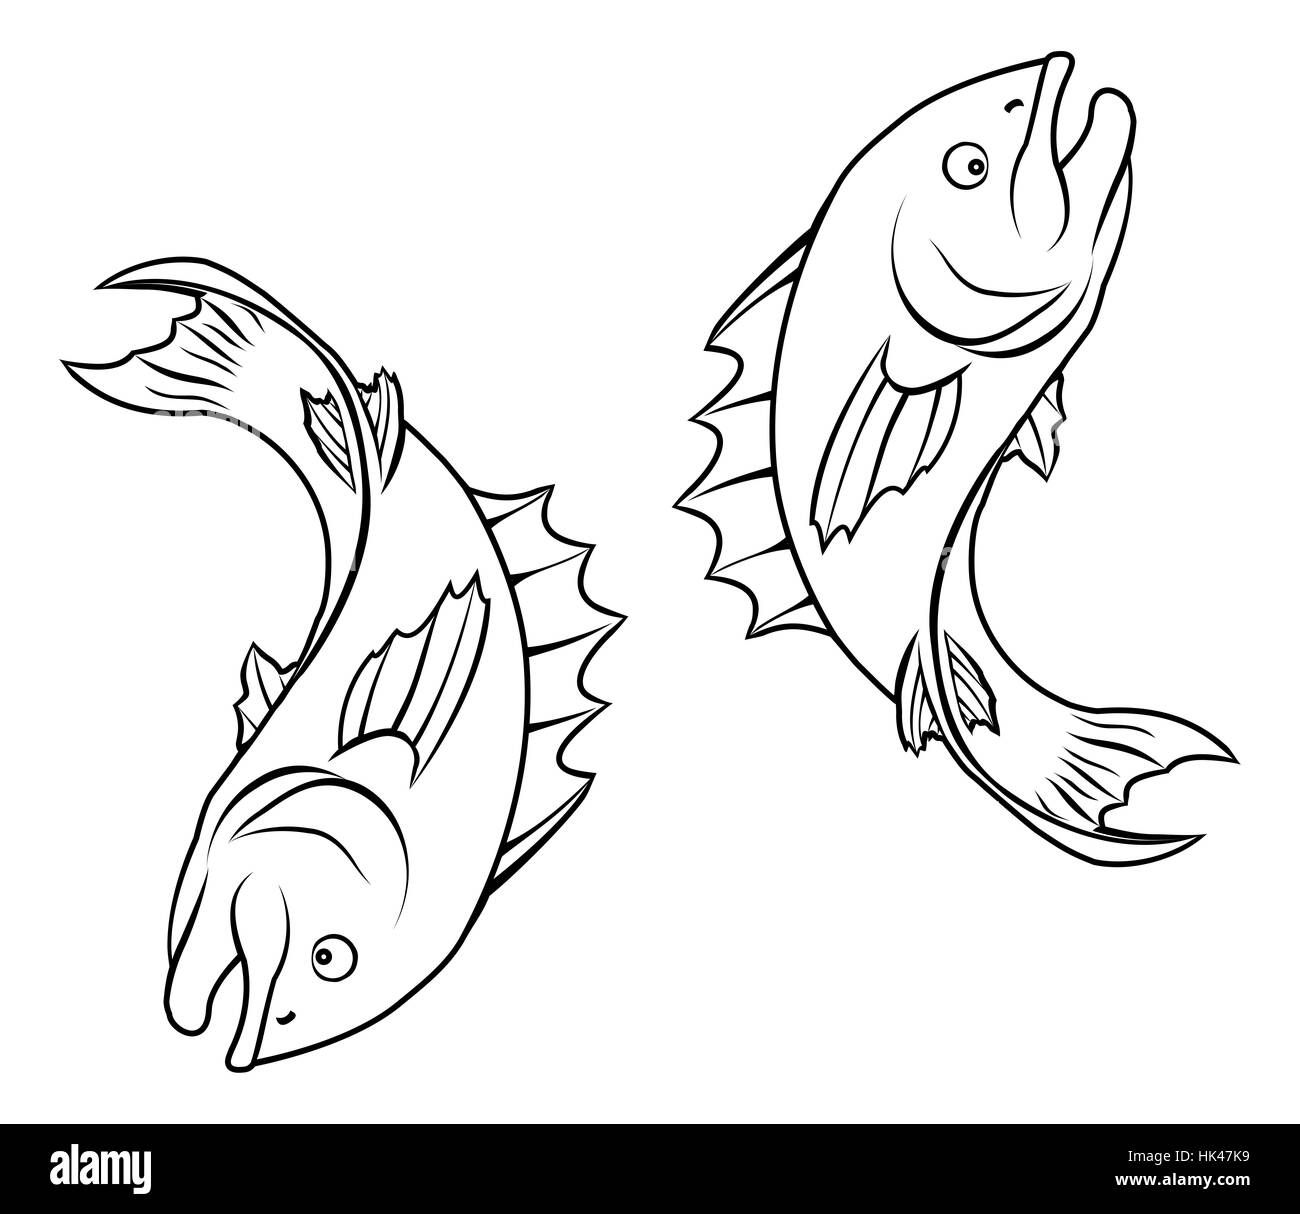 An illustration of stylised fish forming a circle perhaps a fish tattoo - Stock Image